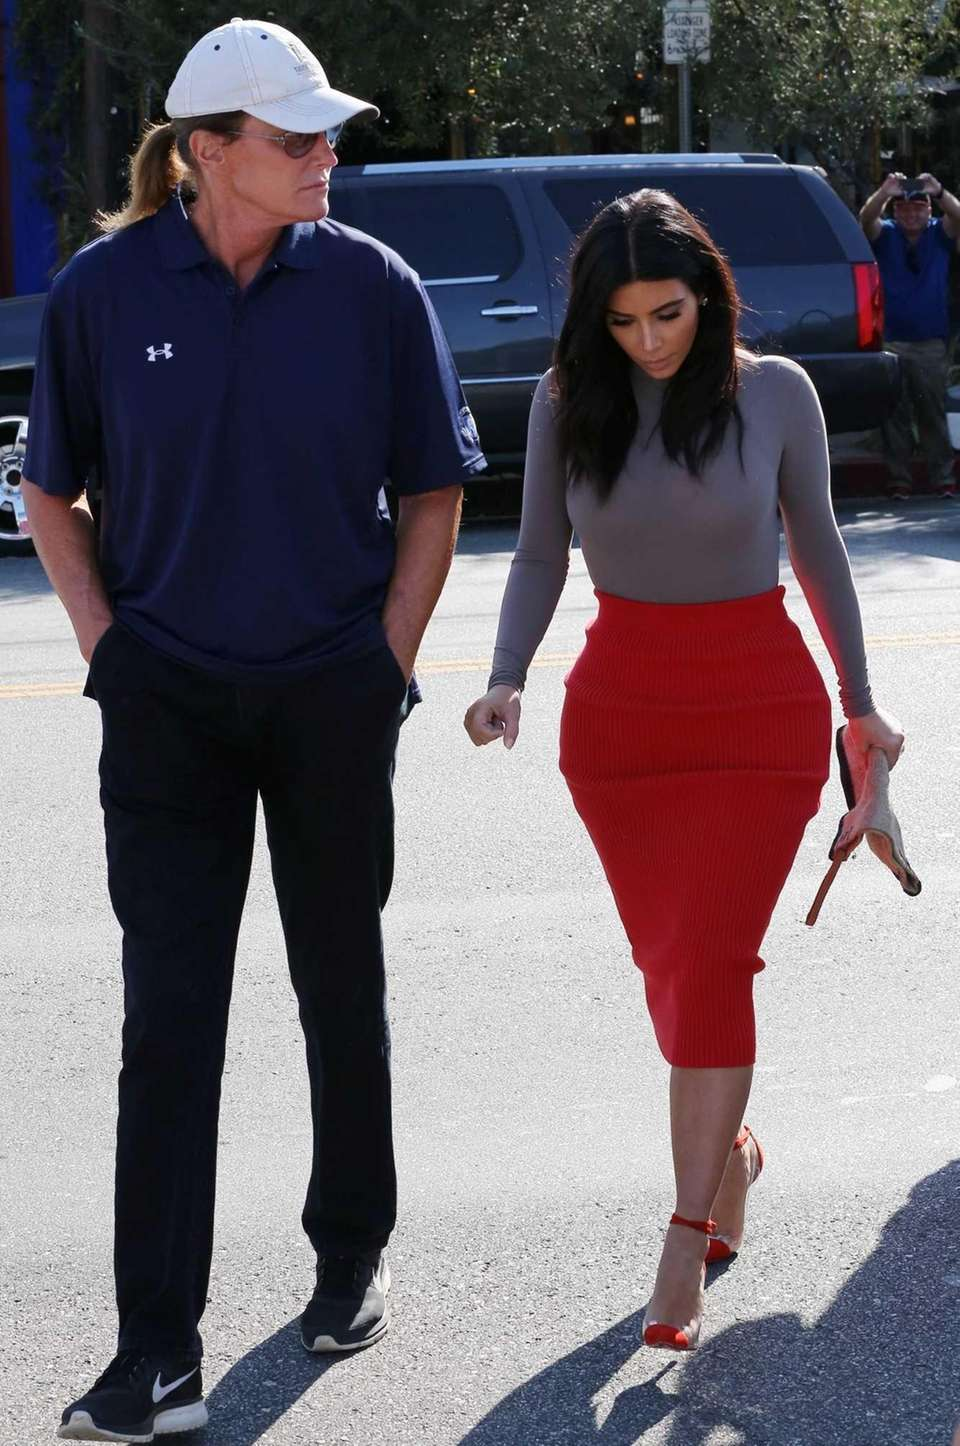 Bruce Jenner and Kim Kardashian head back to